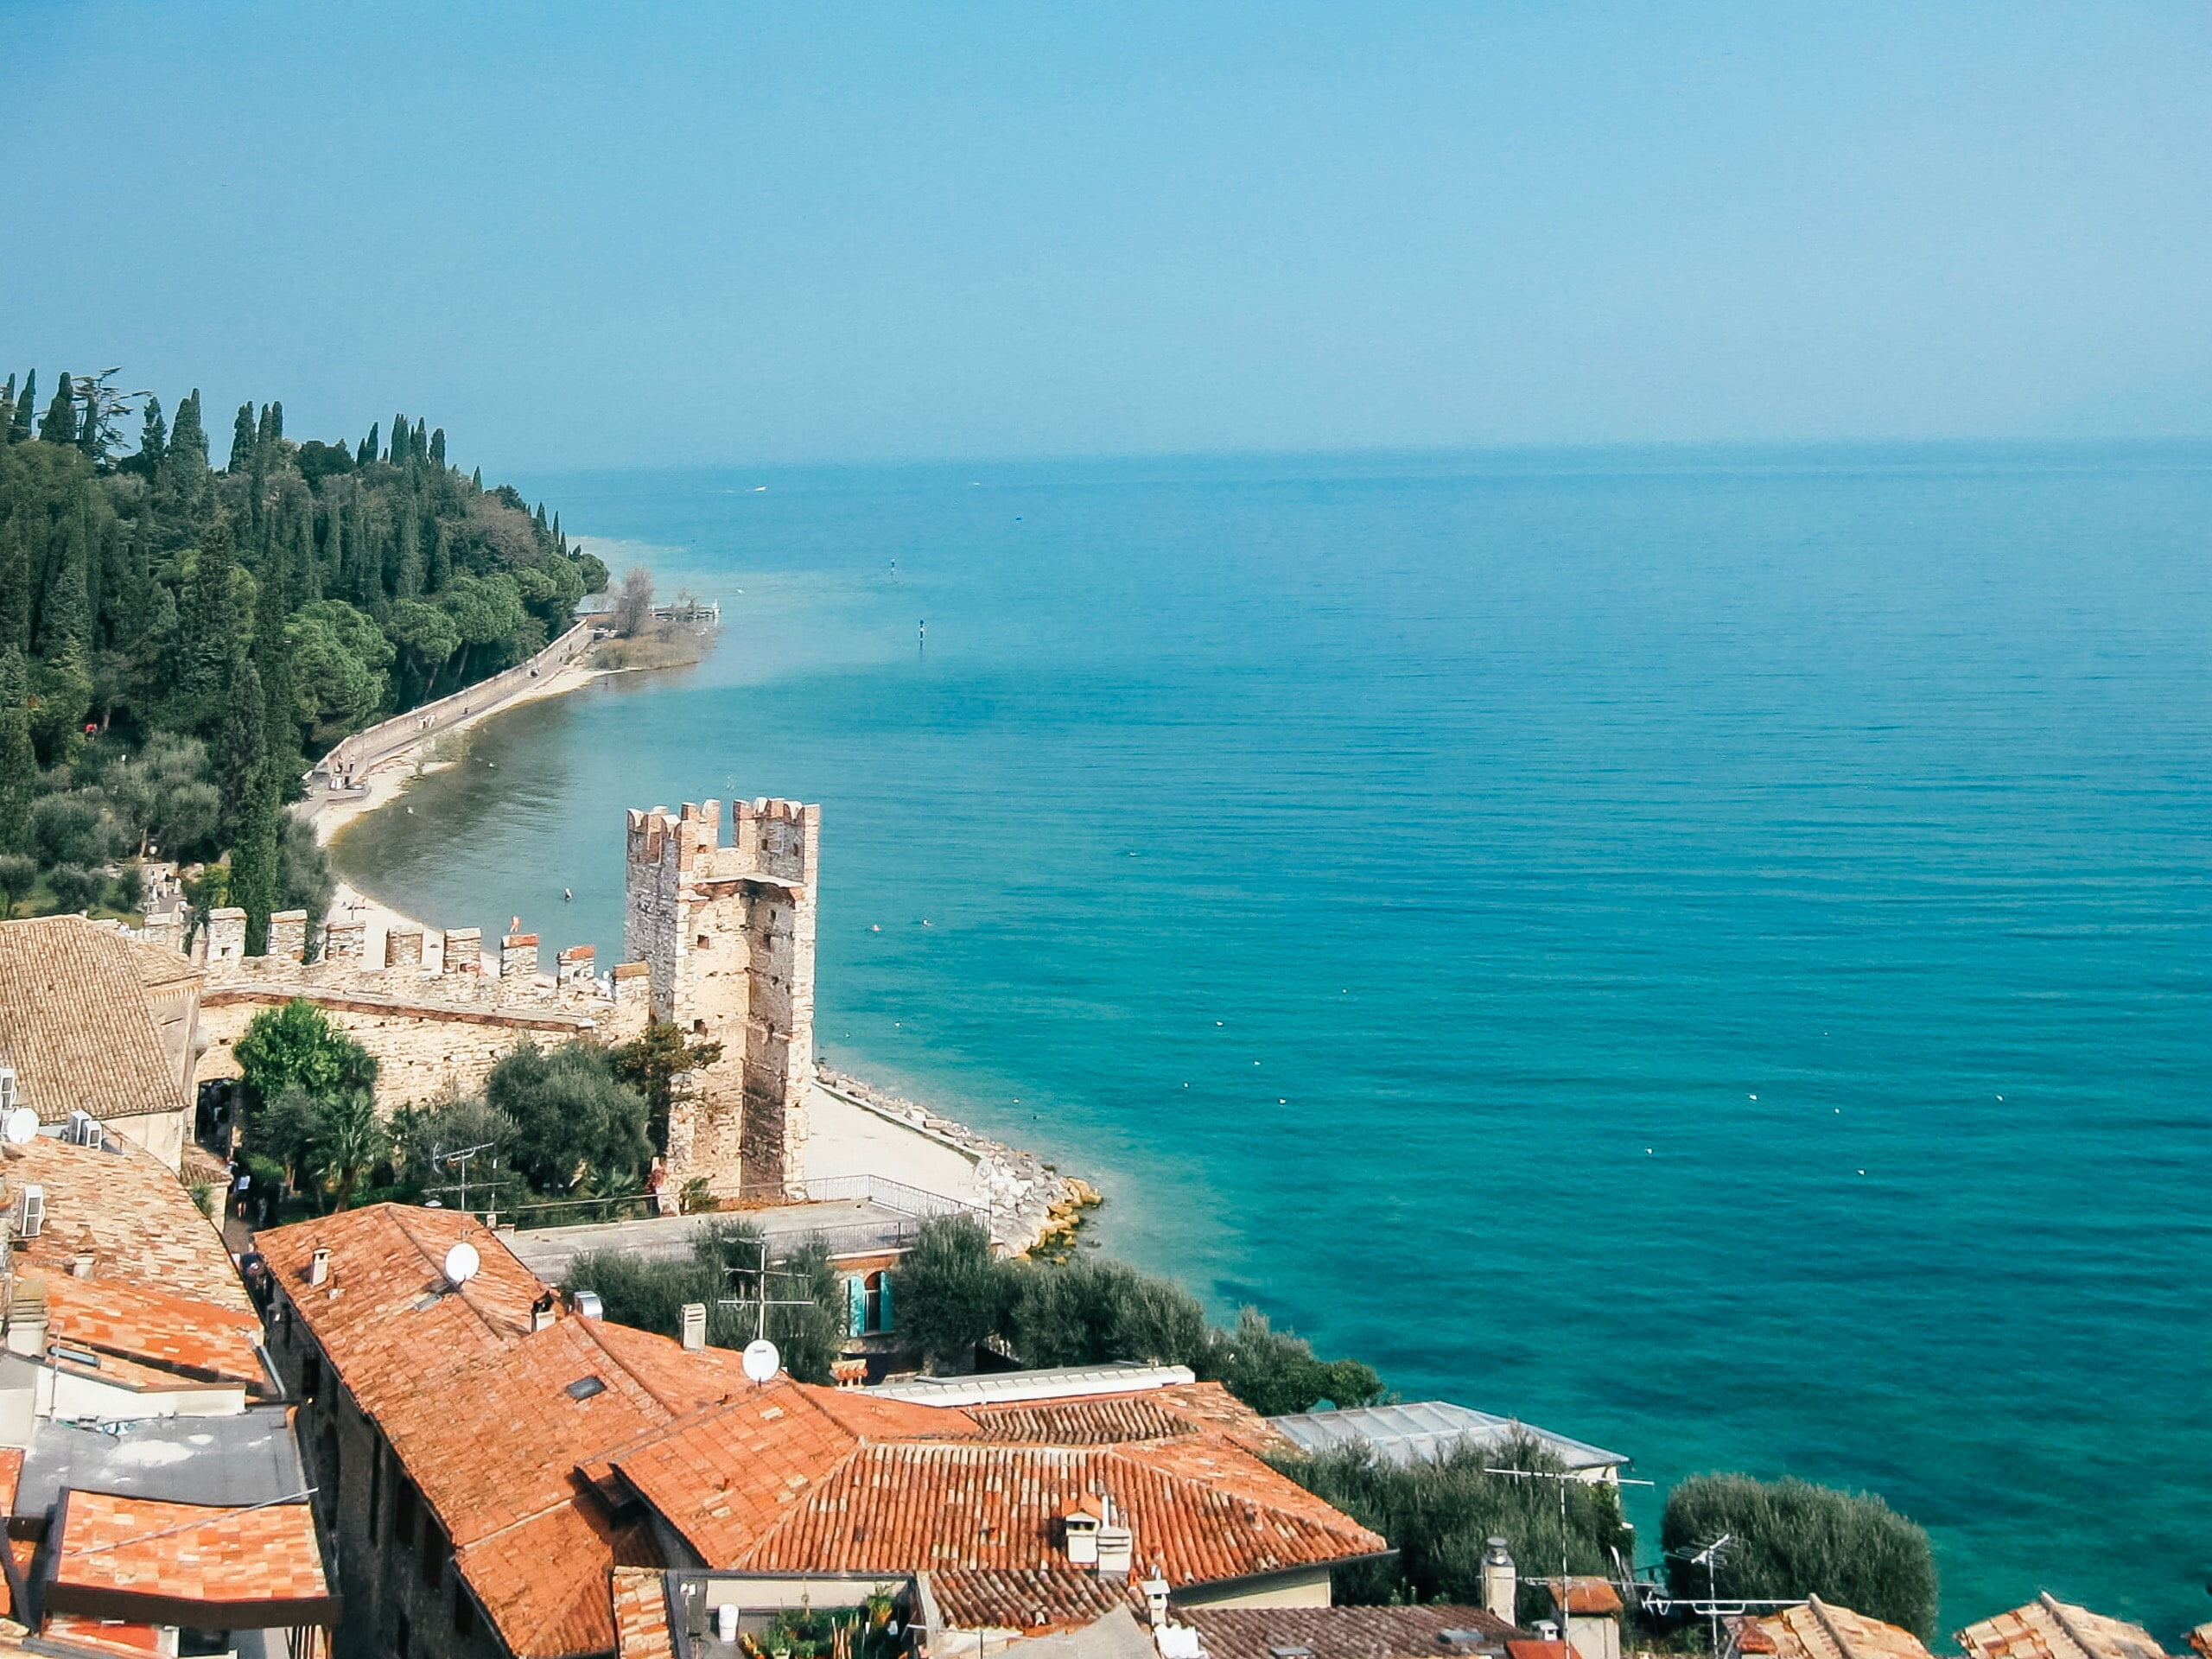 Sirmione in Garda Lake